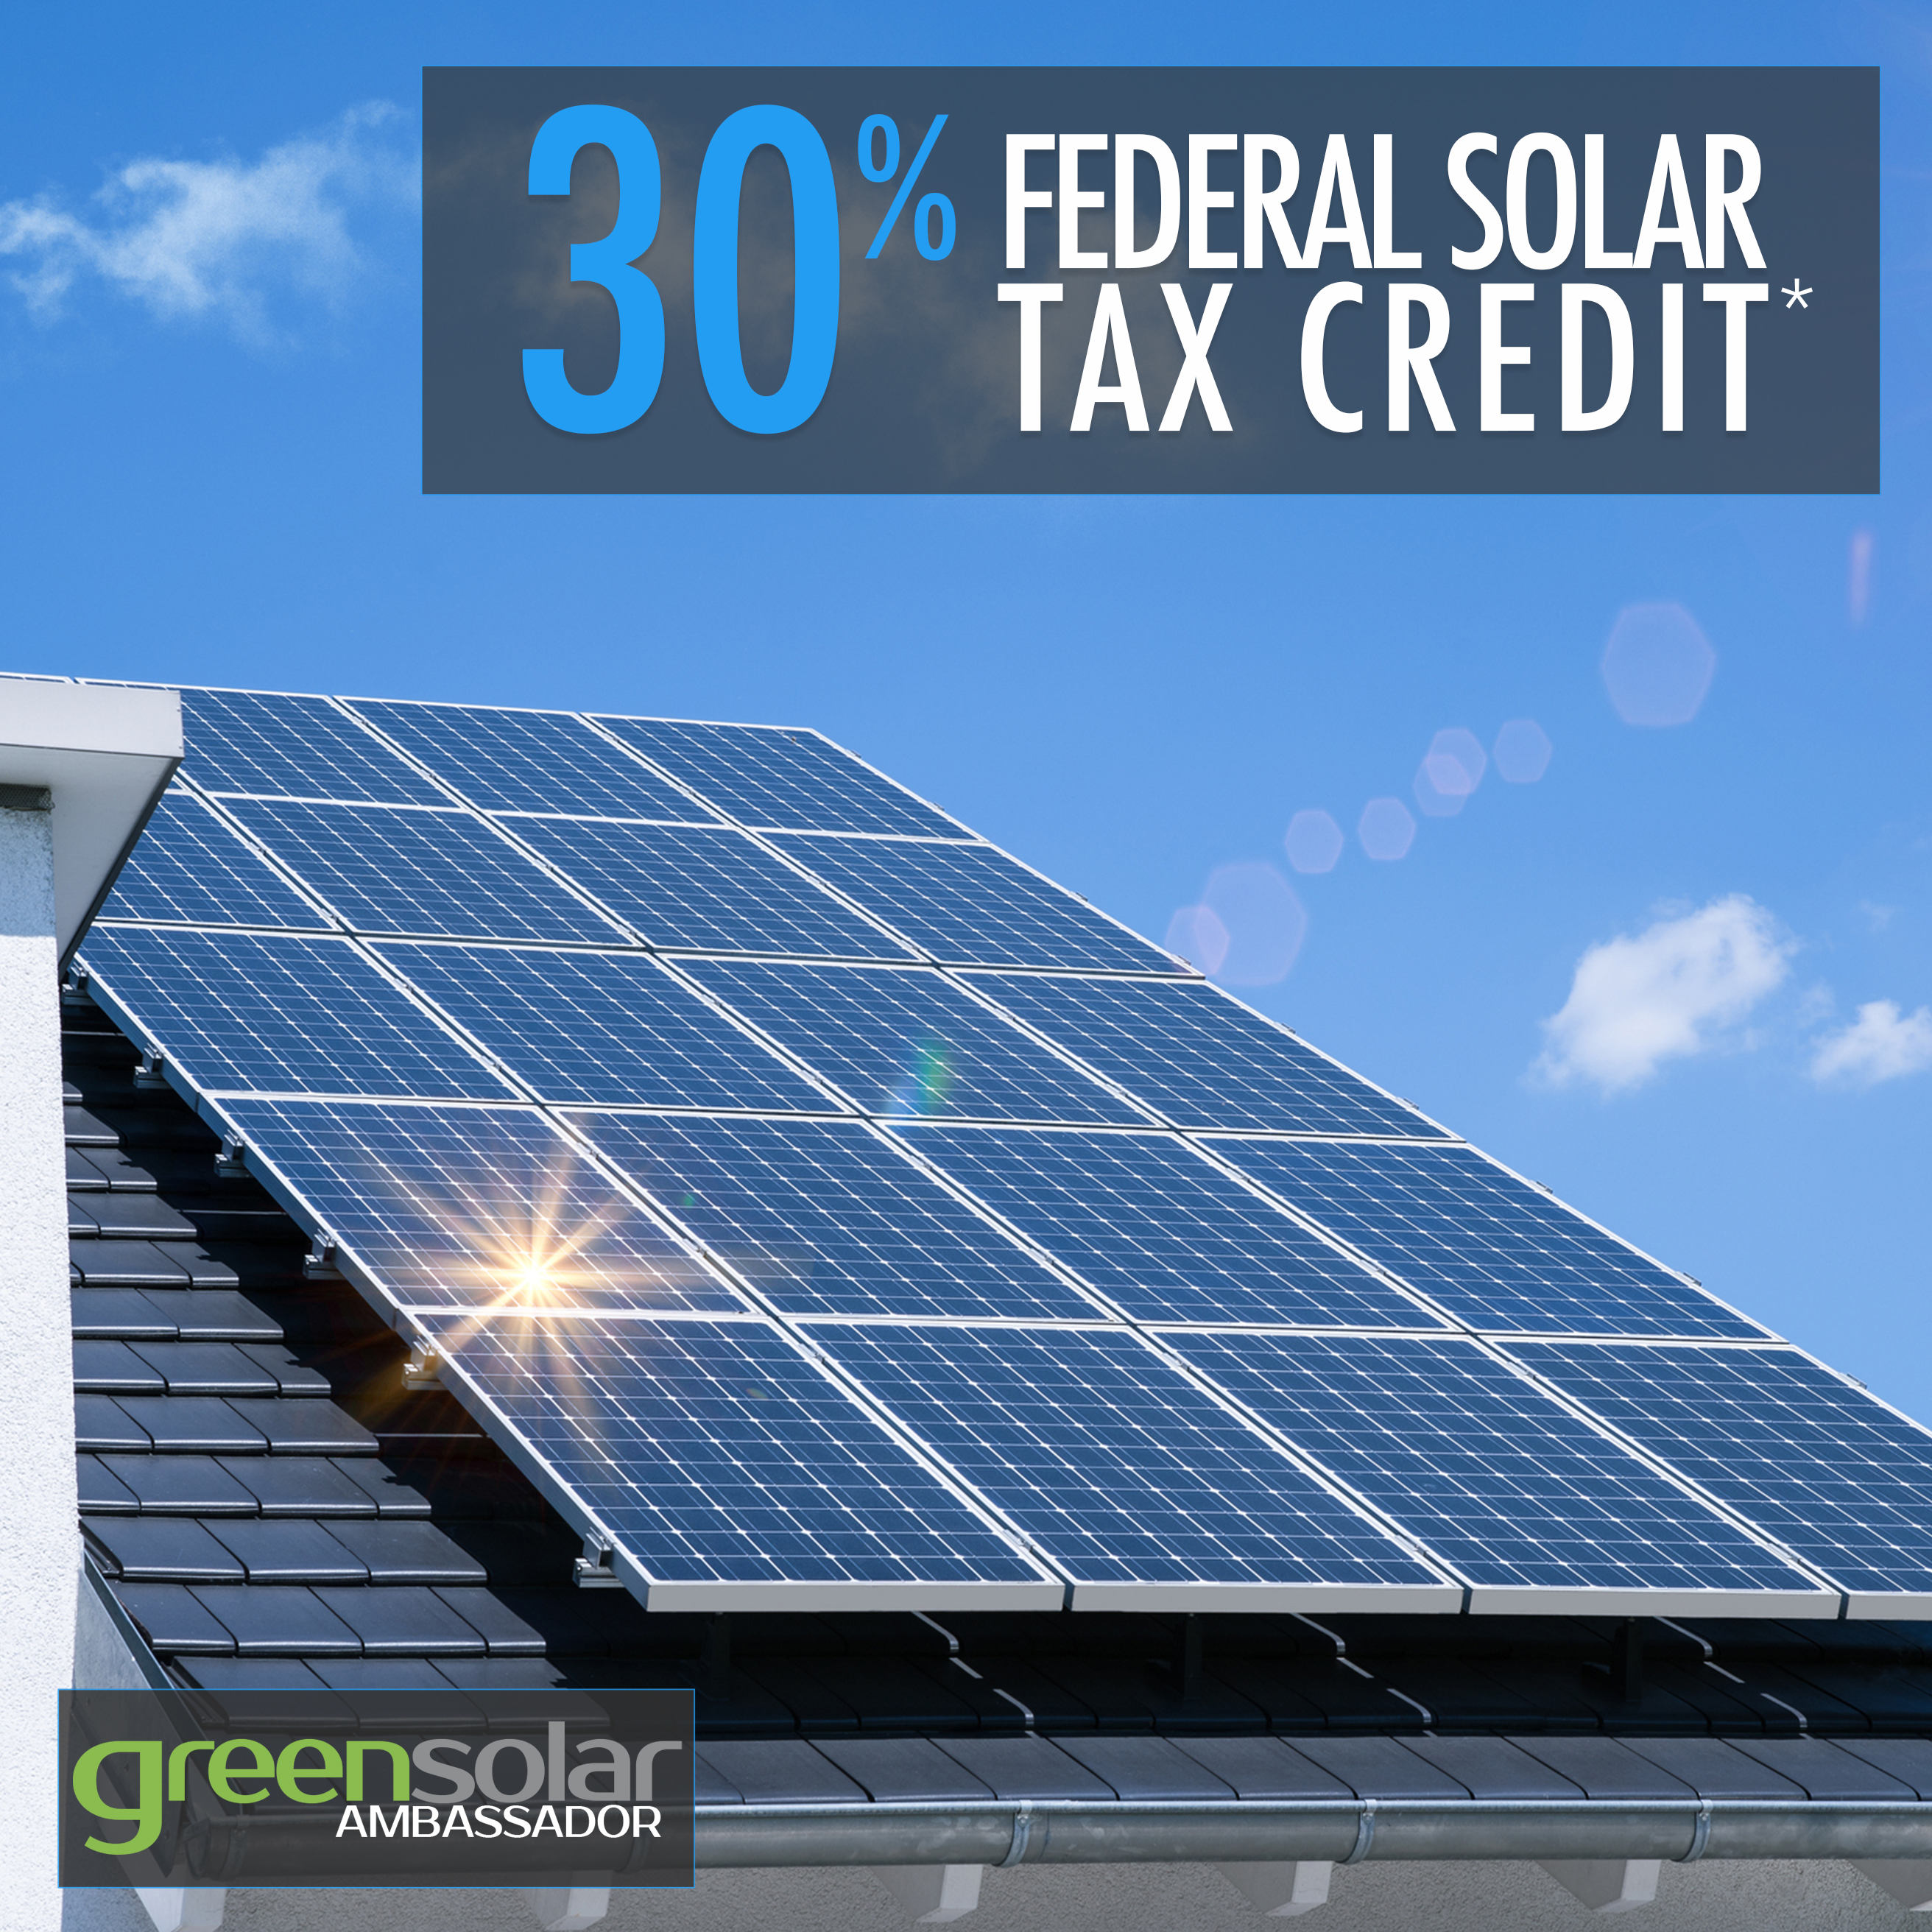 Green Solar Technologies, Inc.